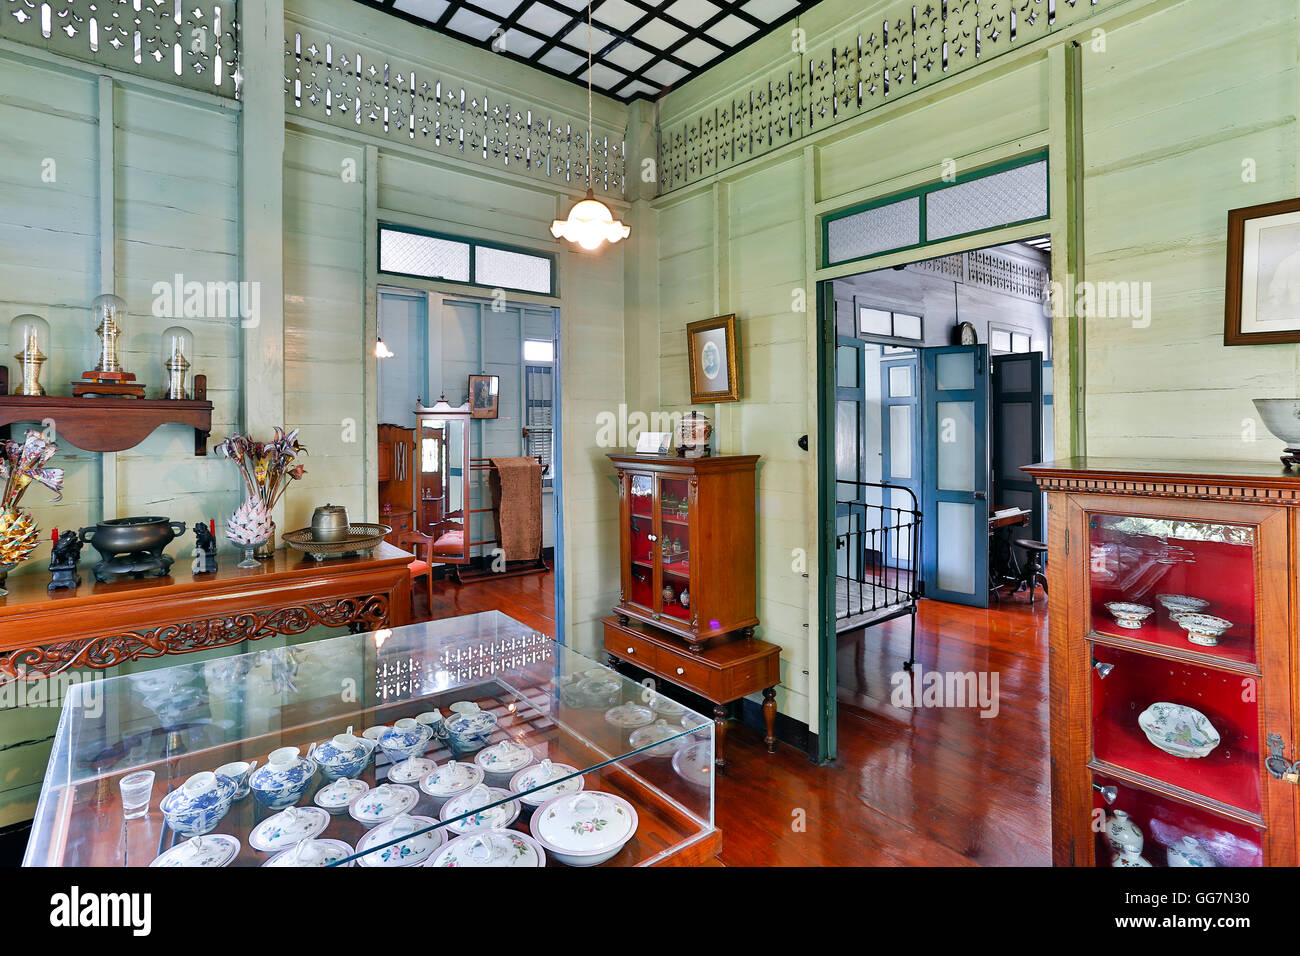 Bangkokian Museum or Bangkok Folk Museum located in Bangrak, Bangkok, Thailand. Stock Photo